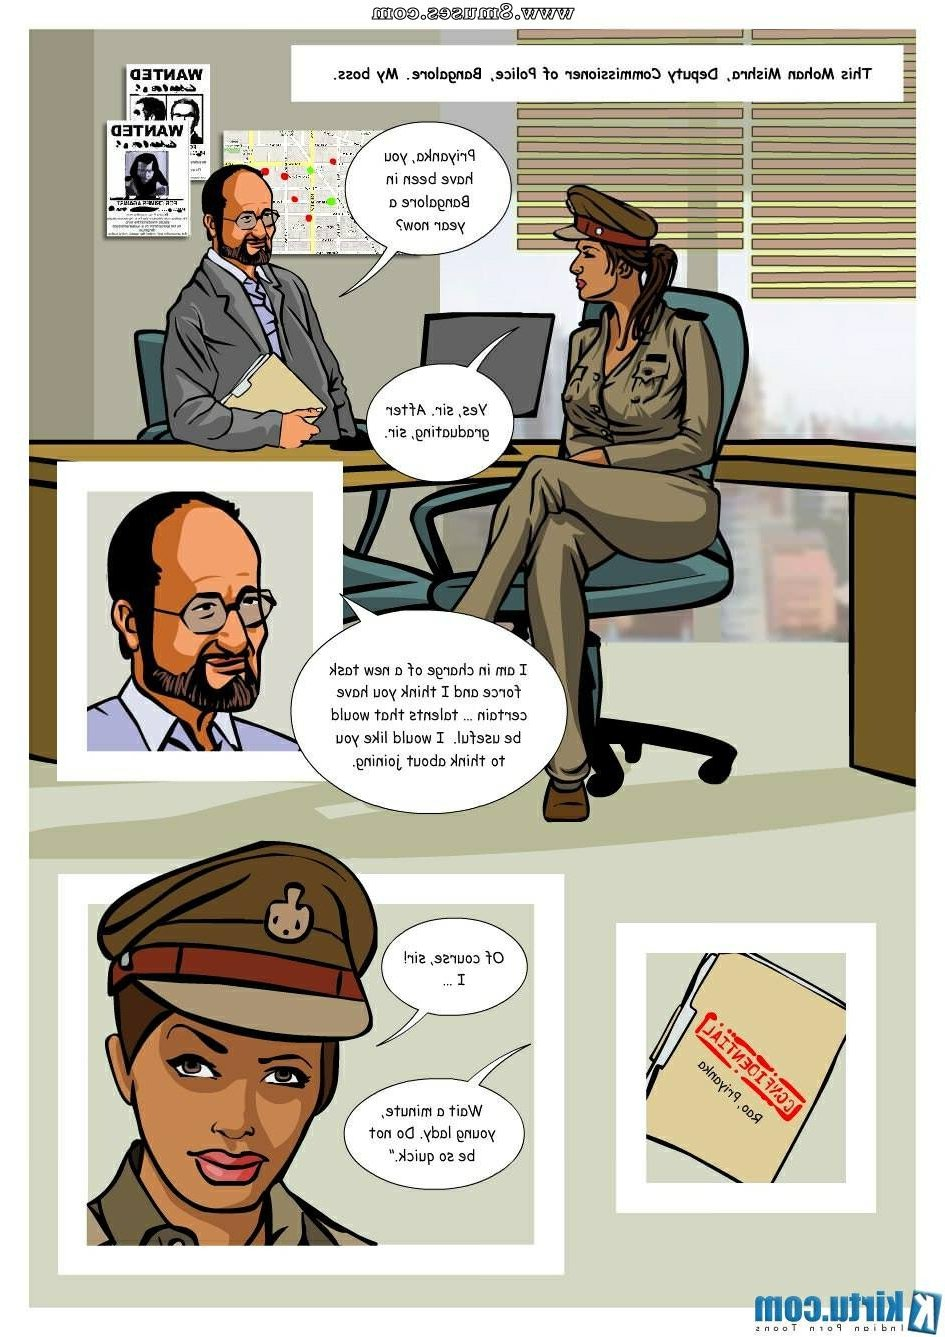 Kirtu_com-Comics/Priya-Rao-The-Encounter-Specialist/Issue-1 Priya_Rao_-_The_Encounter_Specialist_-_Issue_1_5.jpg